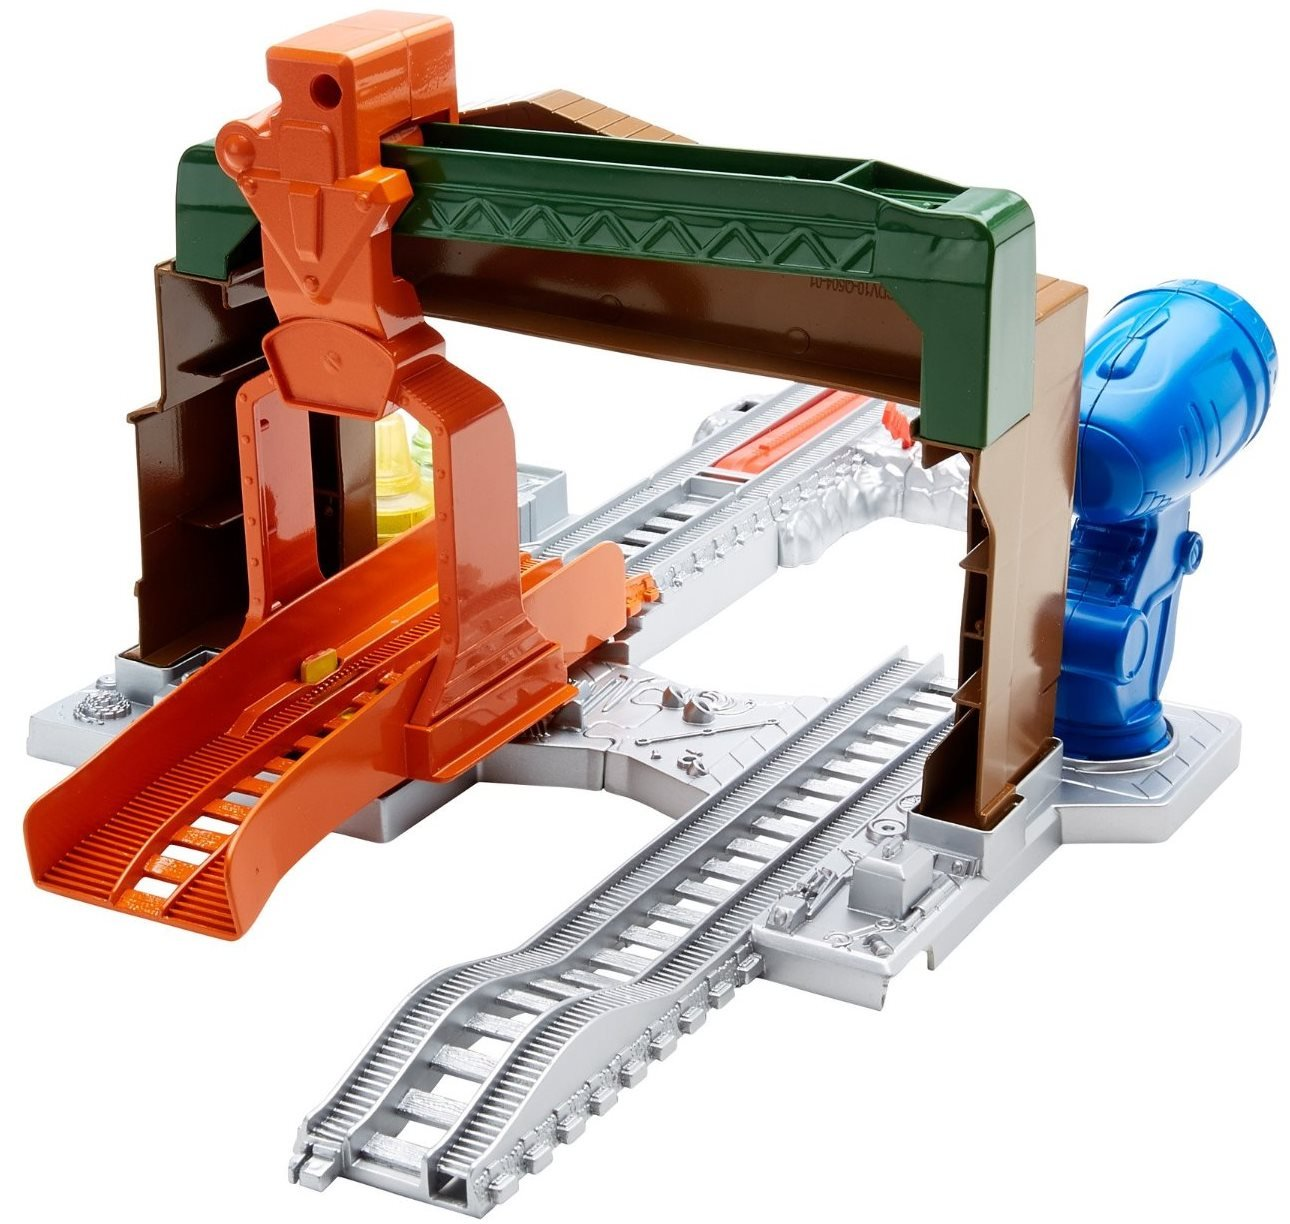 Thomas and Friends TrackMaster Sodor Steamworks Repair Station Motorized Railway Train Track Playset Fisher Price DFM70